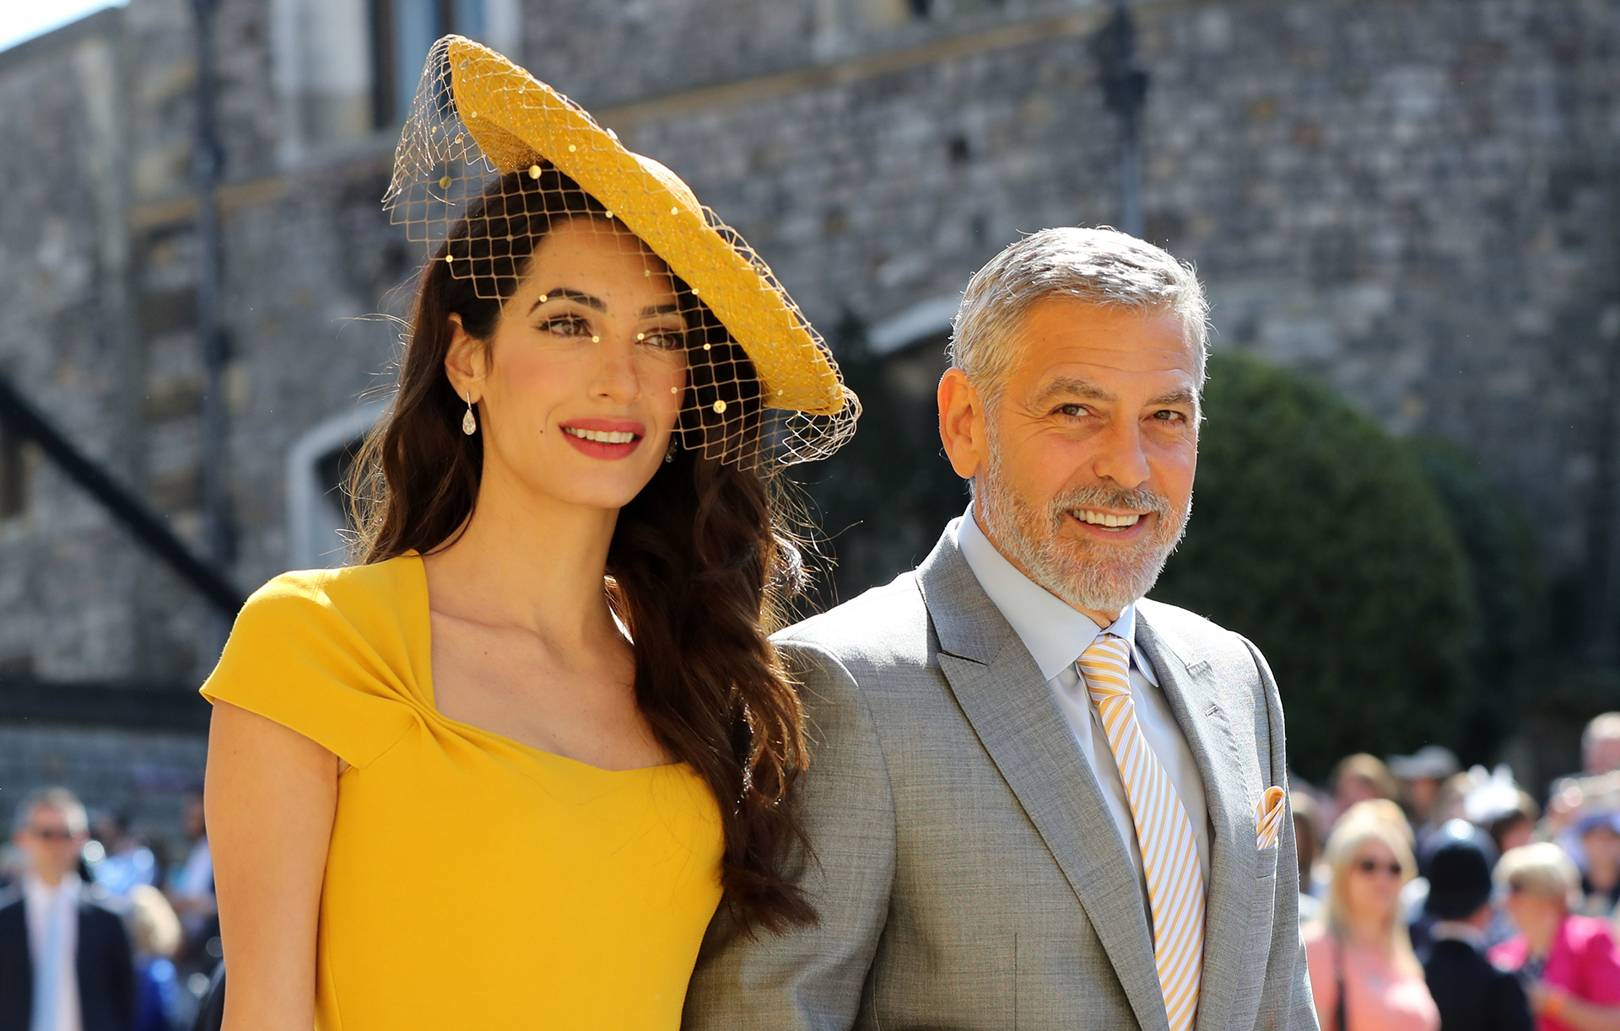 d679d490 The Yellow Stella McCartney Dress Amal Clooney Wore To Meghan And Harry's  Wedding Is Now For Sale | British Vogue